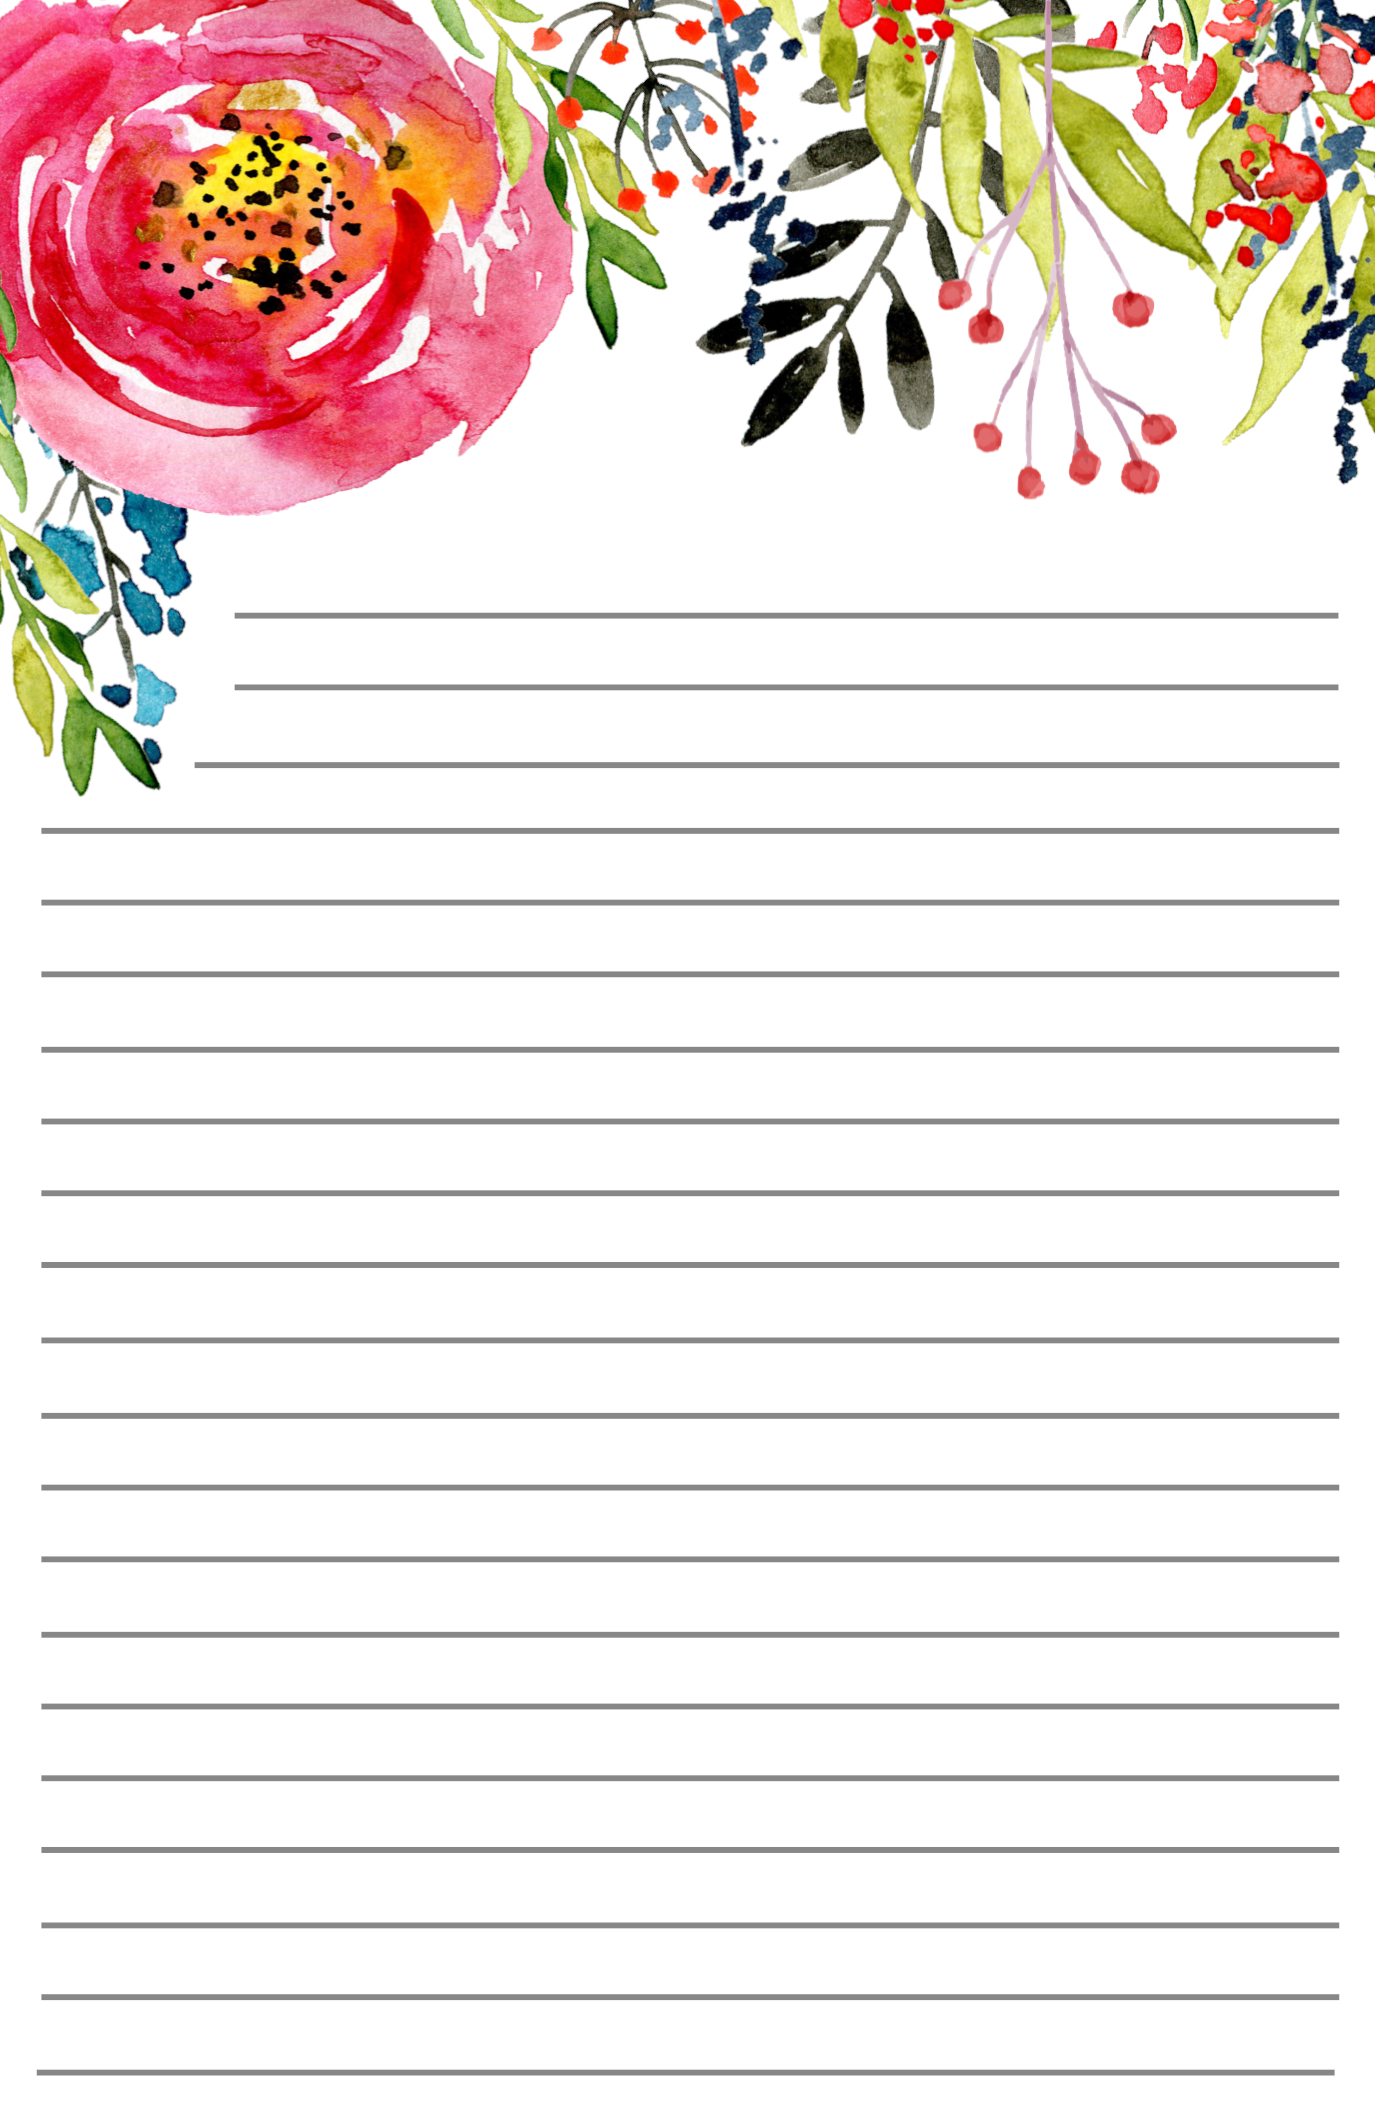 This is an image of Comprehensive Stationery Paper Printable Free